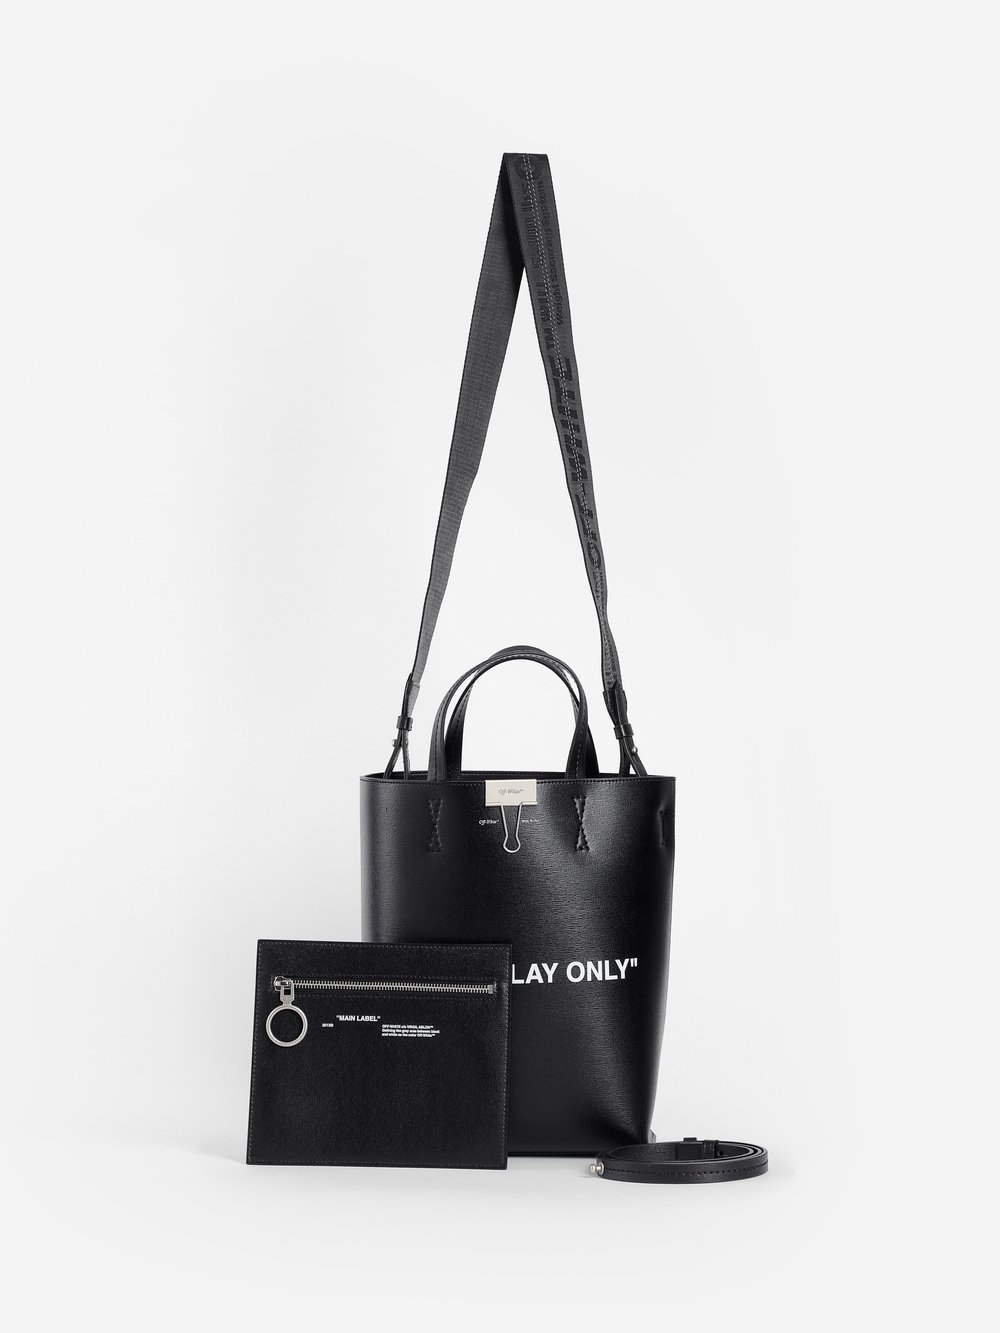 newest style huge selection of great deals Off-White c/o Virgil Abloh Tote Bags OWNA032S184231701001